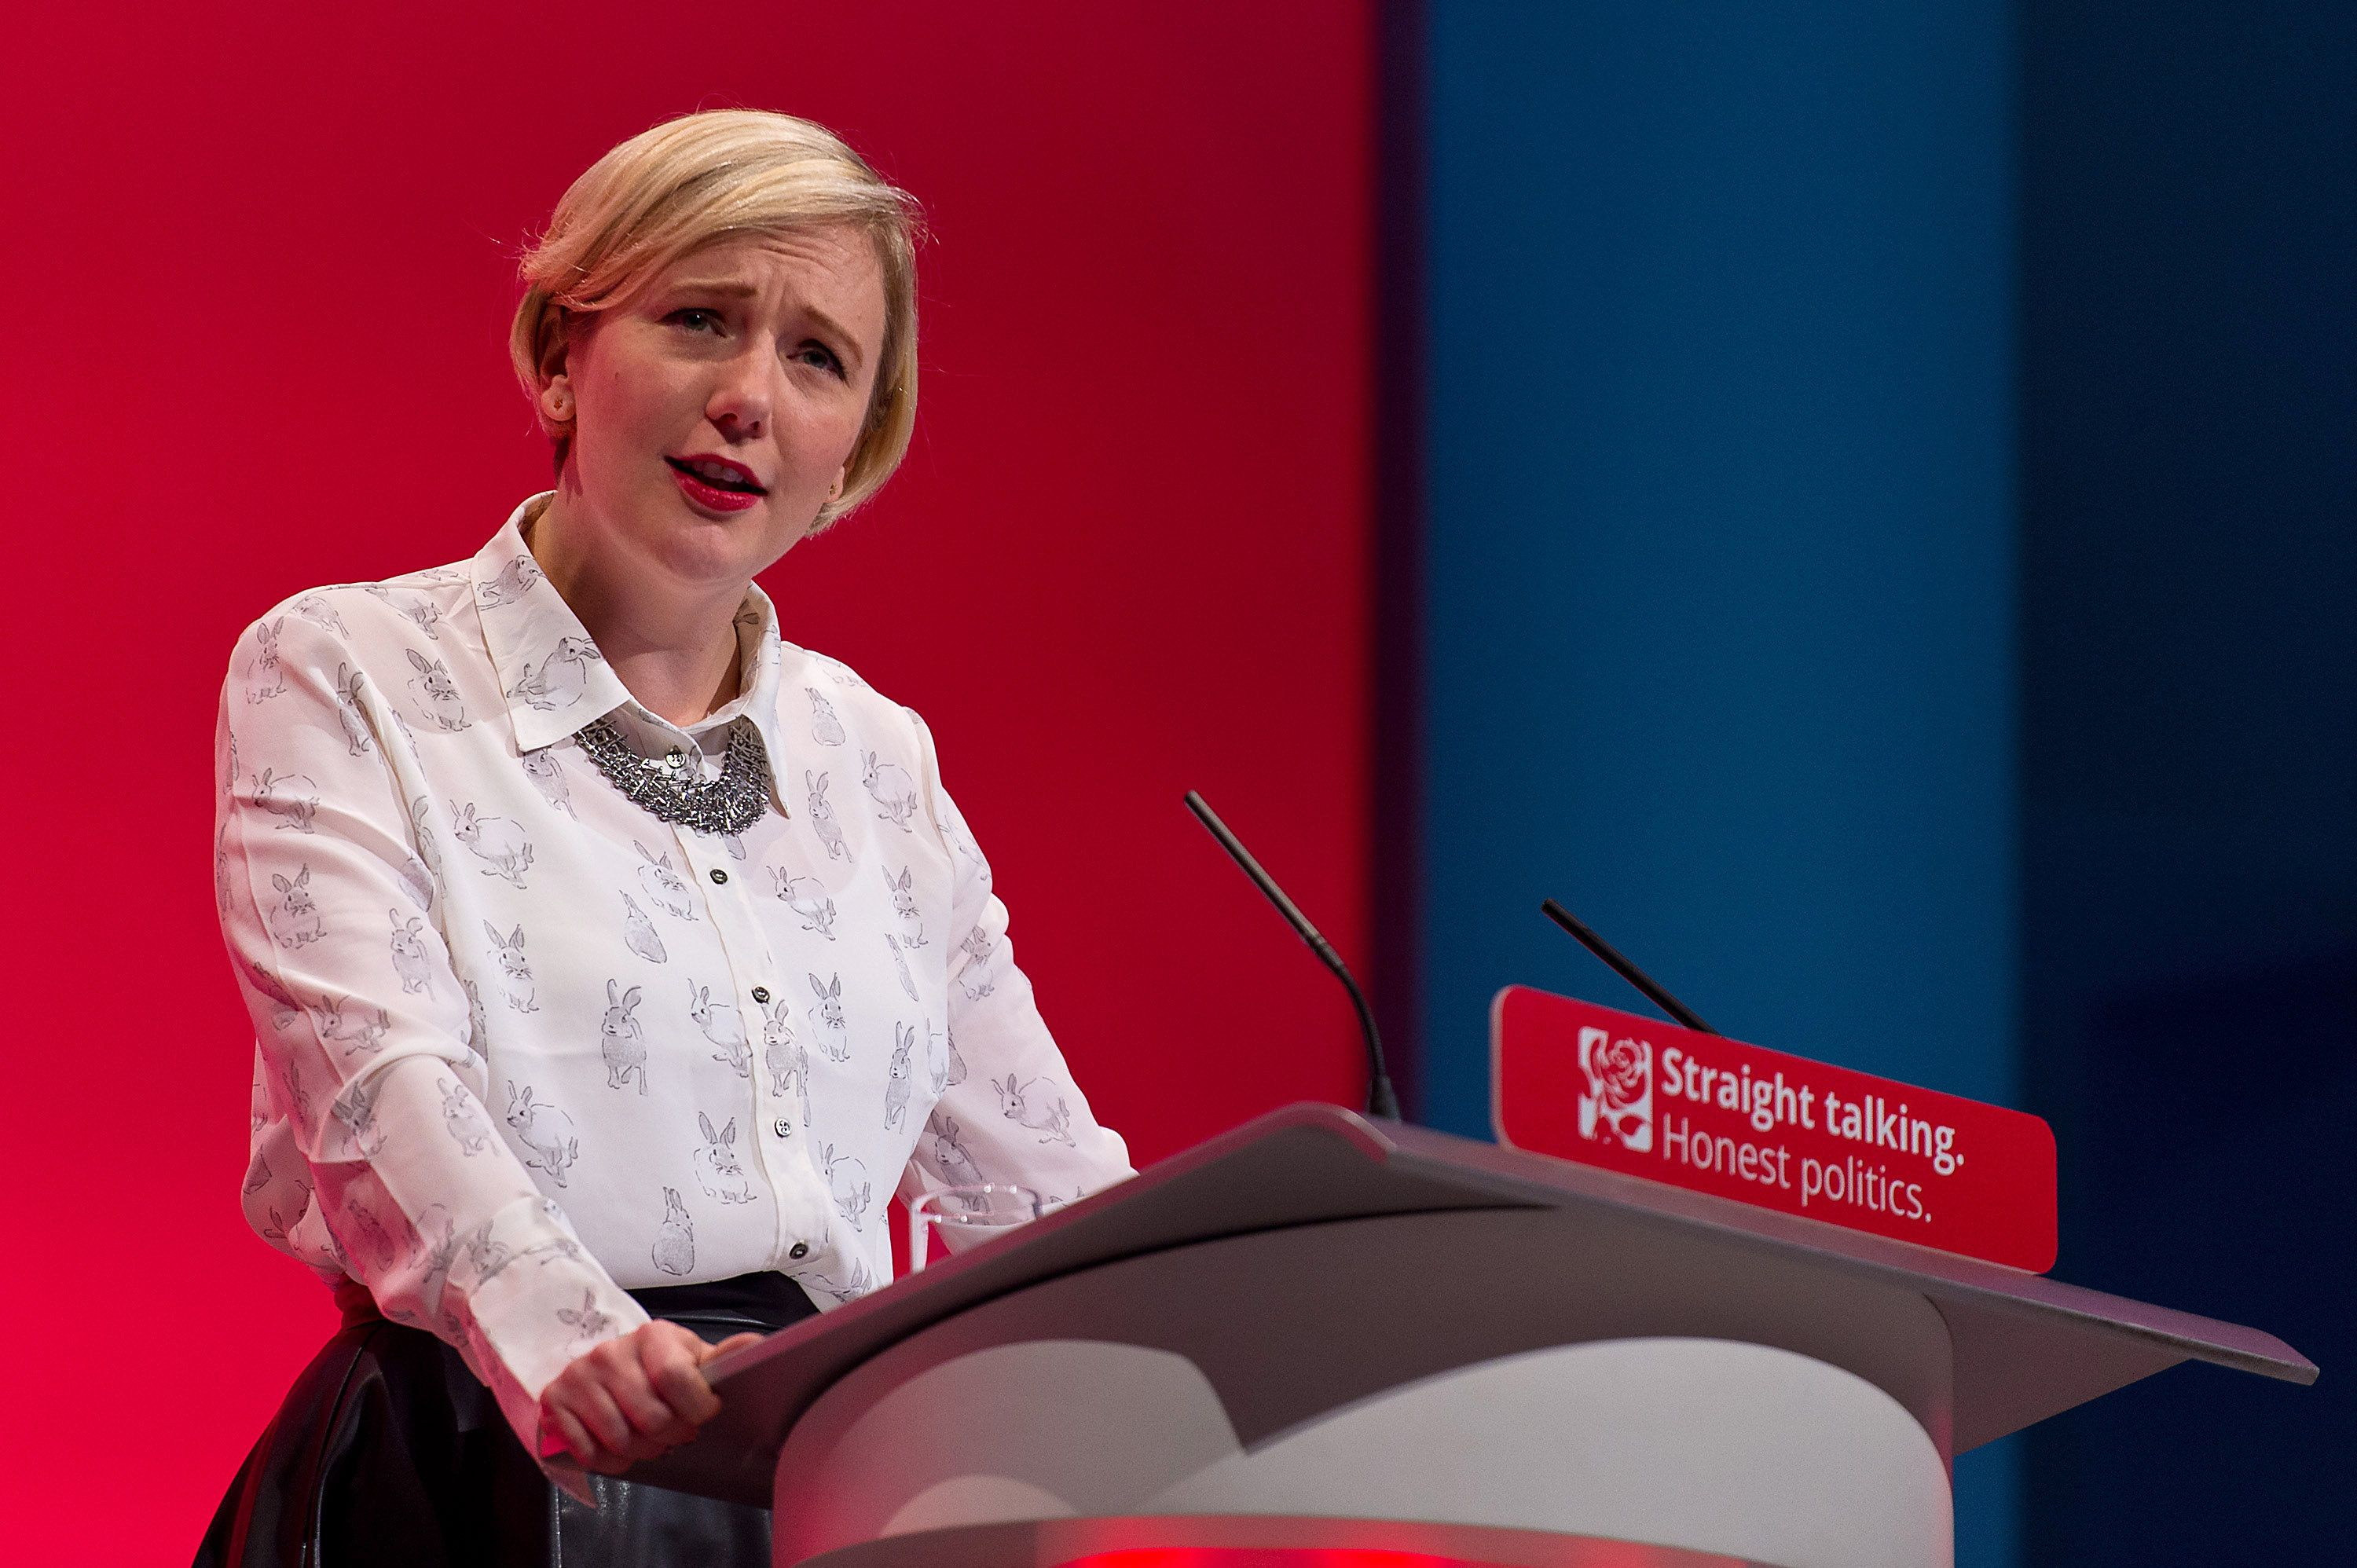 Stella Creasy is the leader of the all-female group of MPs which has tabled the